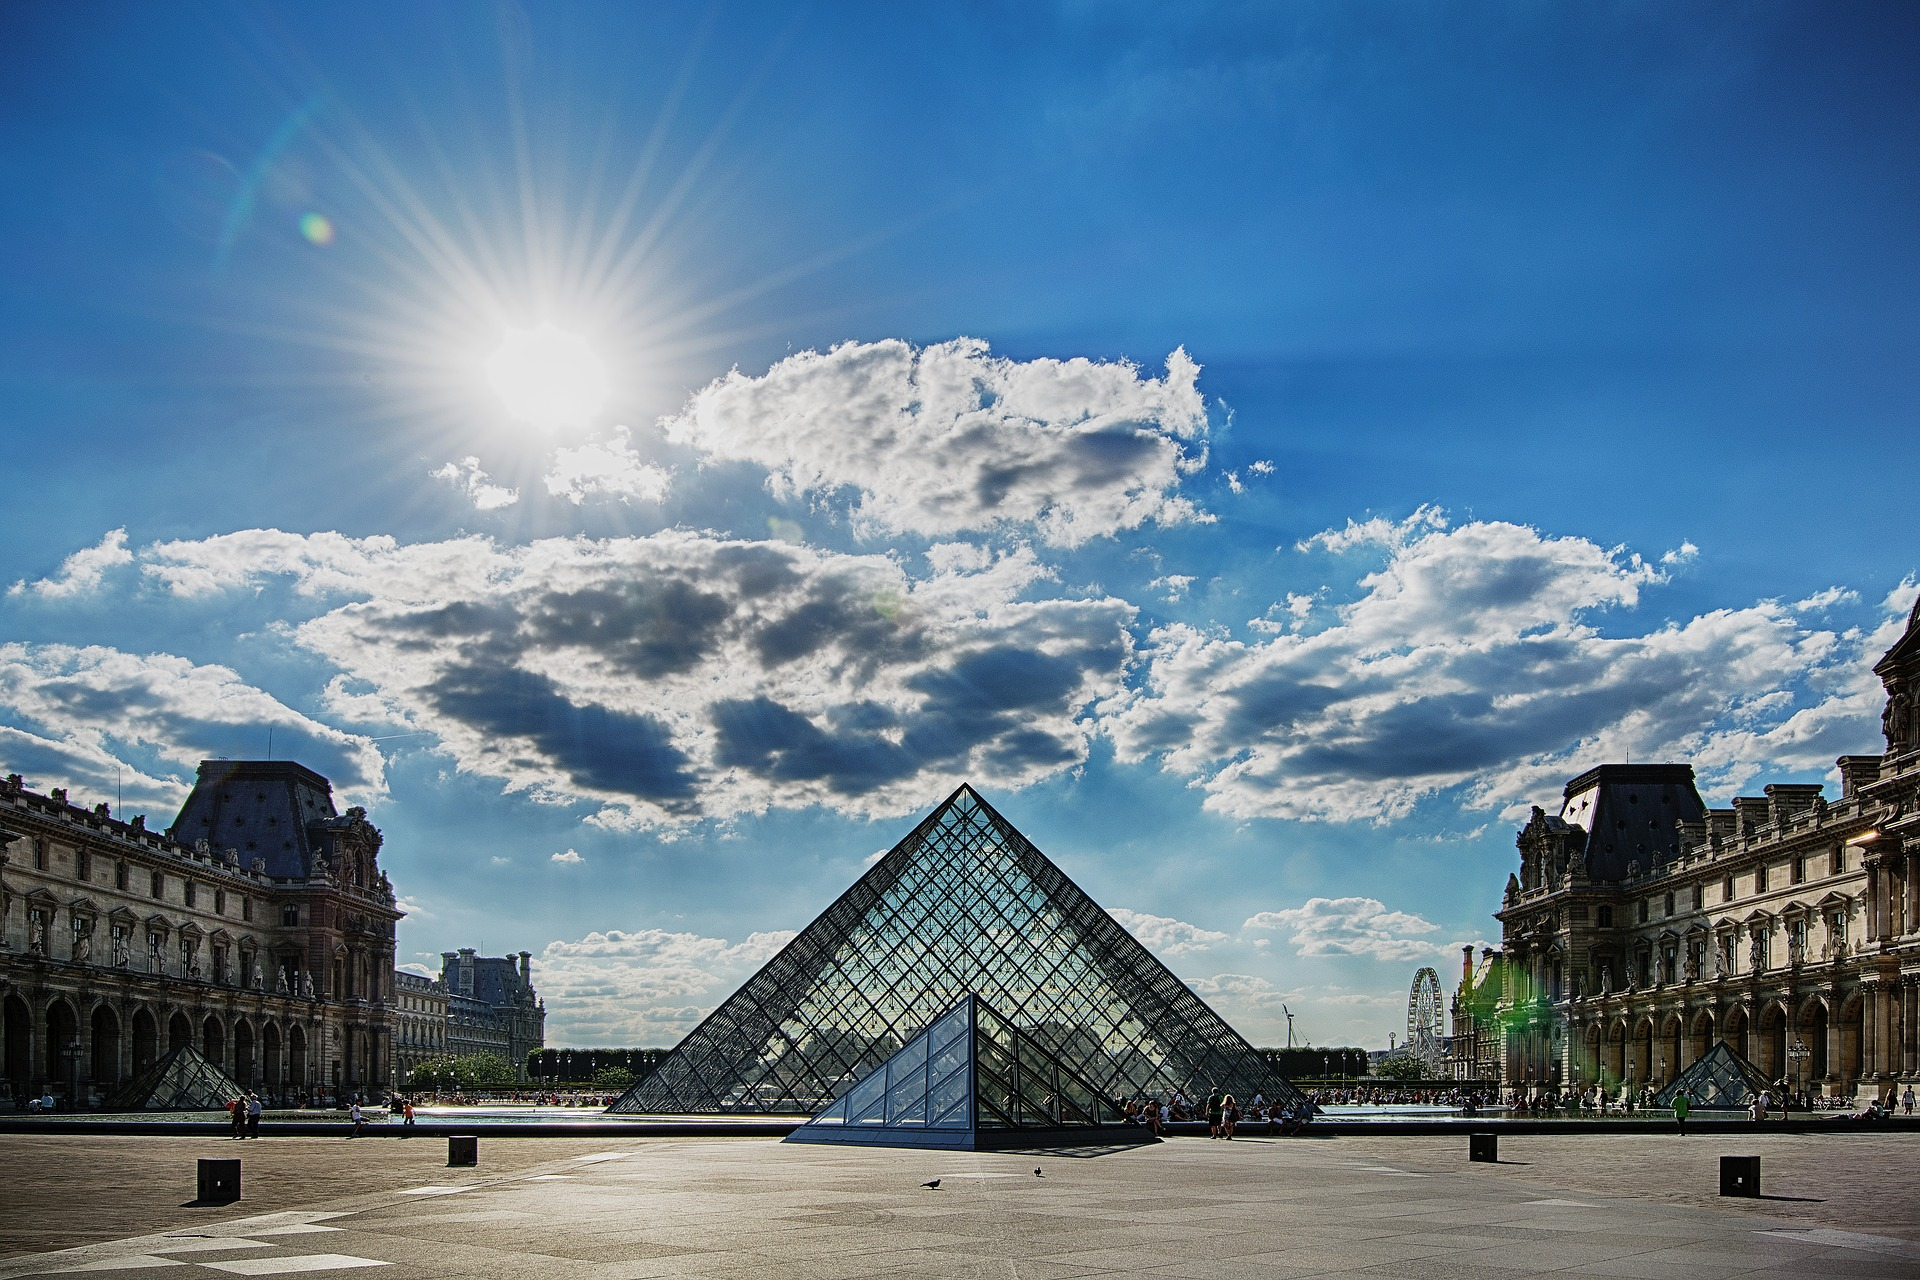 Glass Pyramid at the Louvre, Paris France